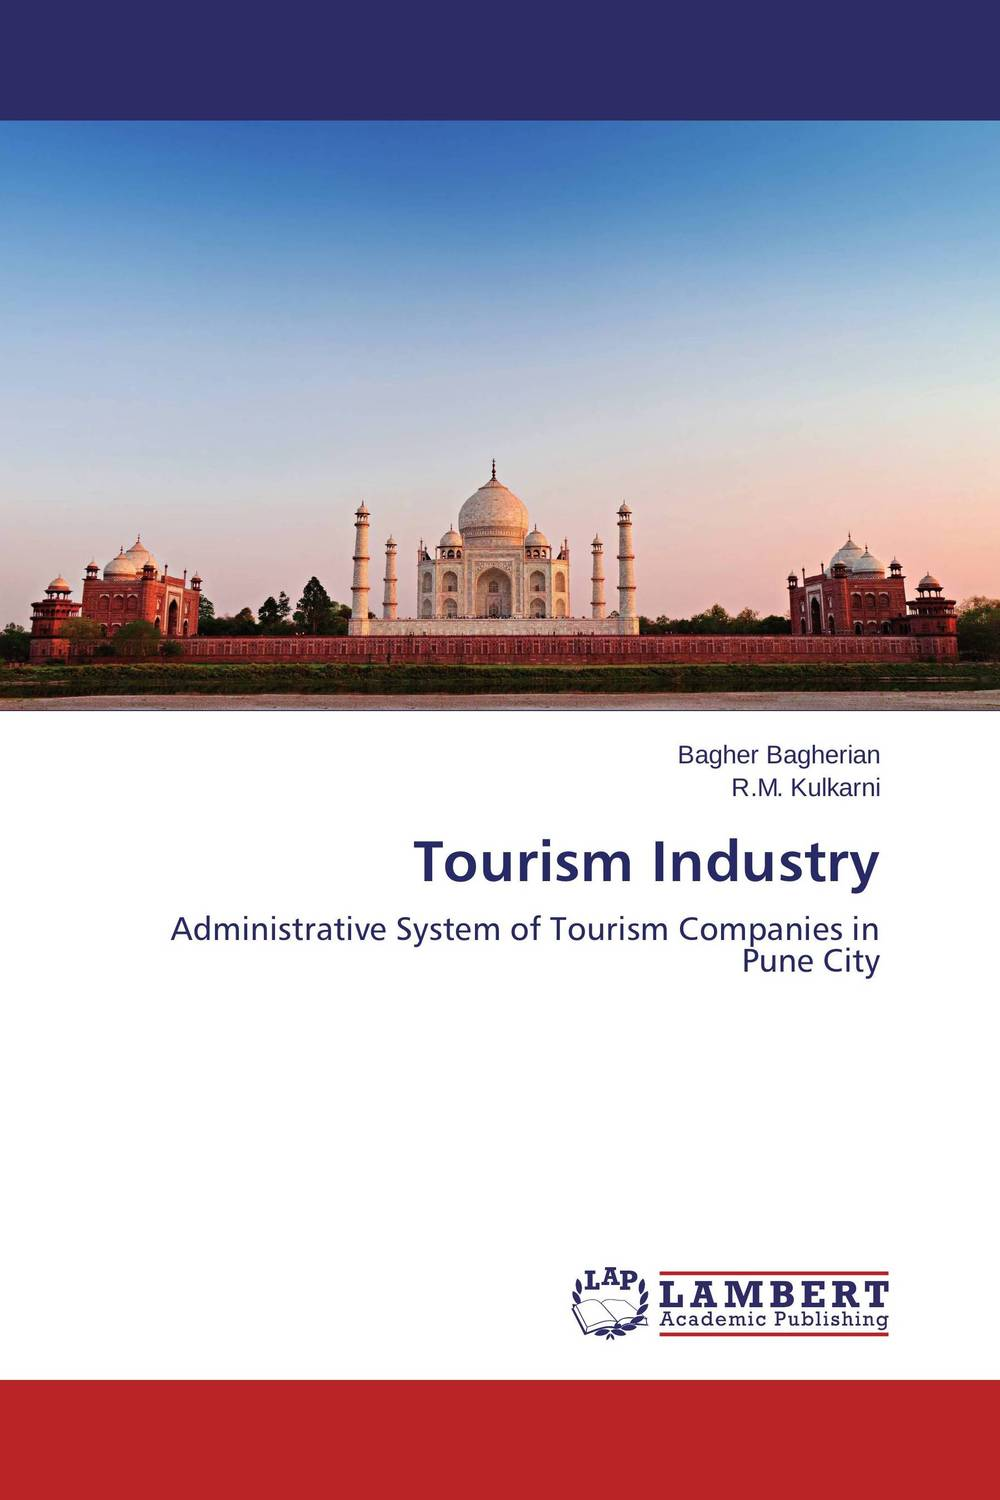 csr in tourism industry Study is to develop the model of corporate social responsibility in tourism industry specifically, the objective of this study is to examine the validity and.